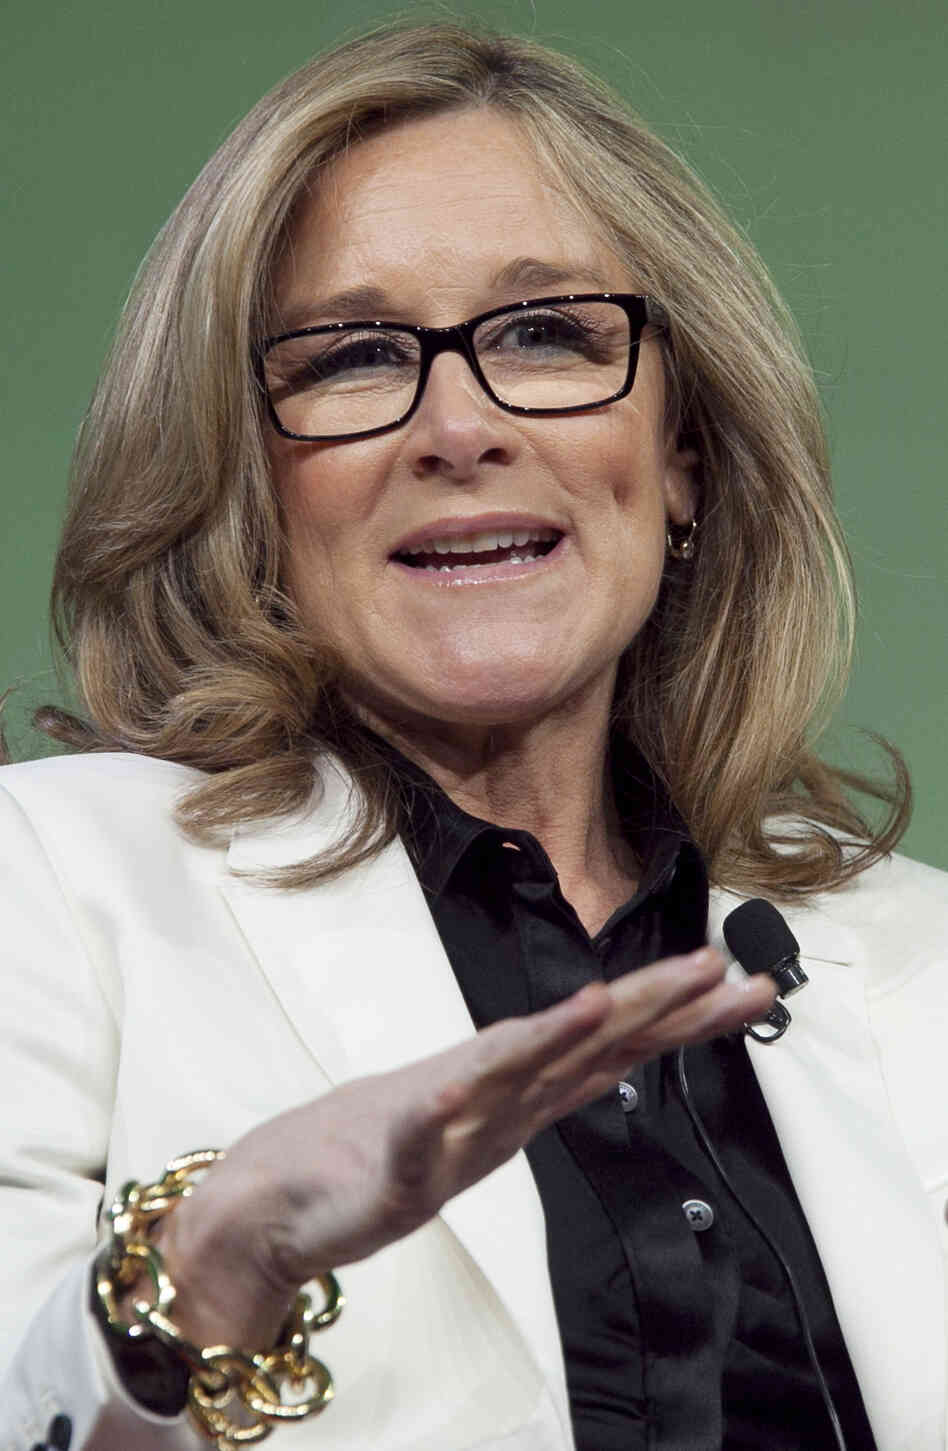 Angela Ahrendts is leaving her post as CEO of Burberry to head the online and retail division at Apple. She will become the first woman in the tech company's senior executive ranks.